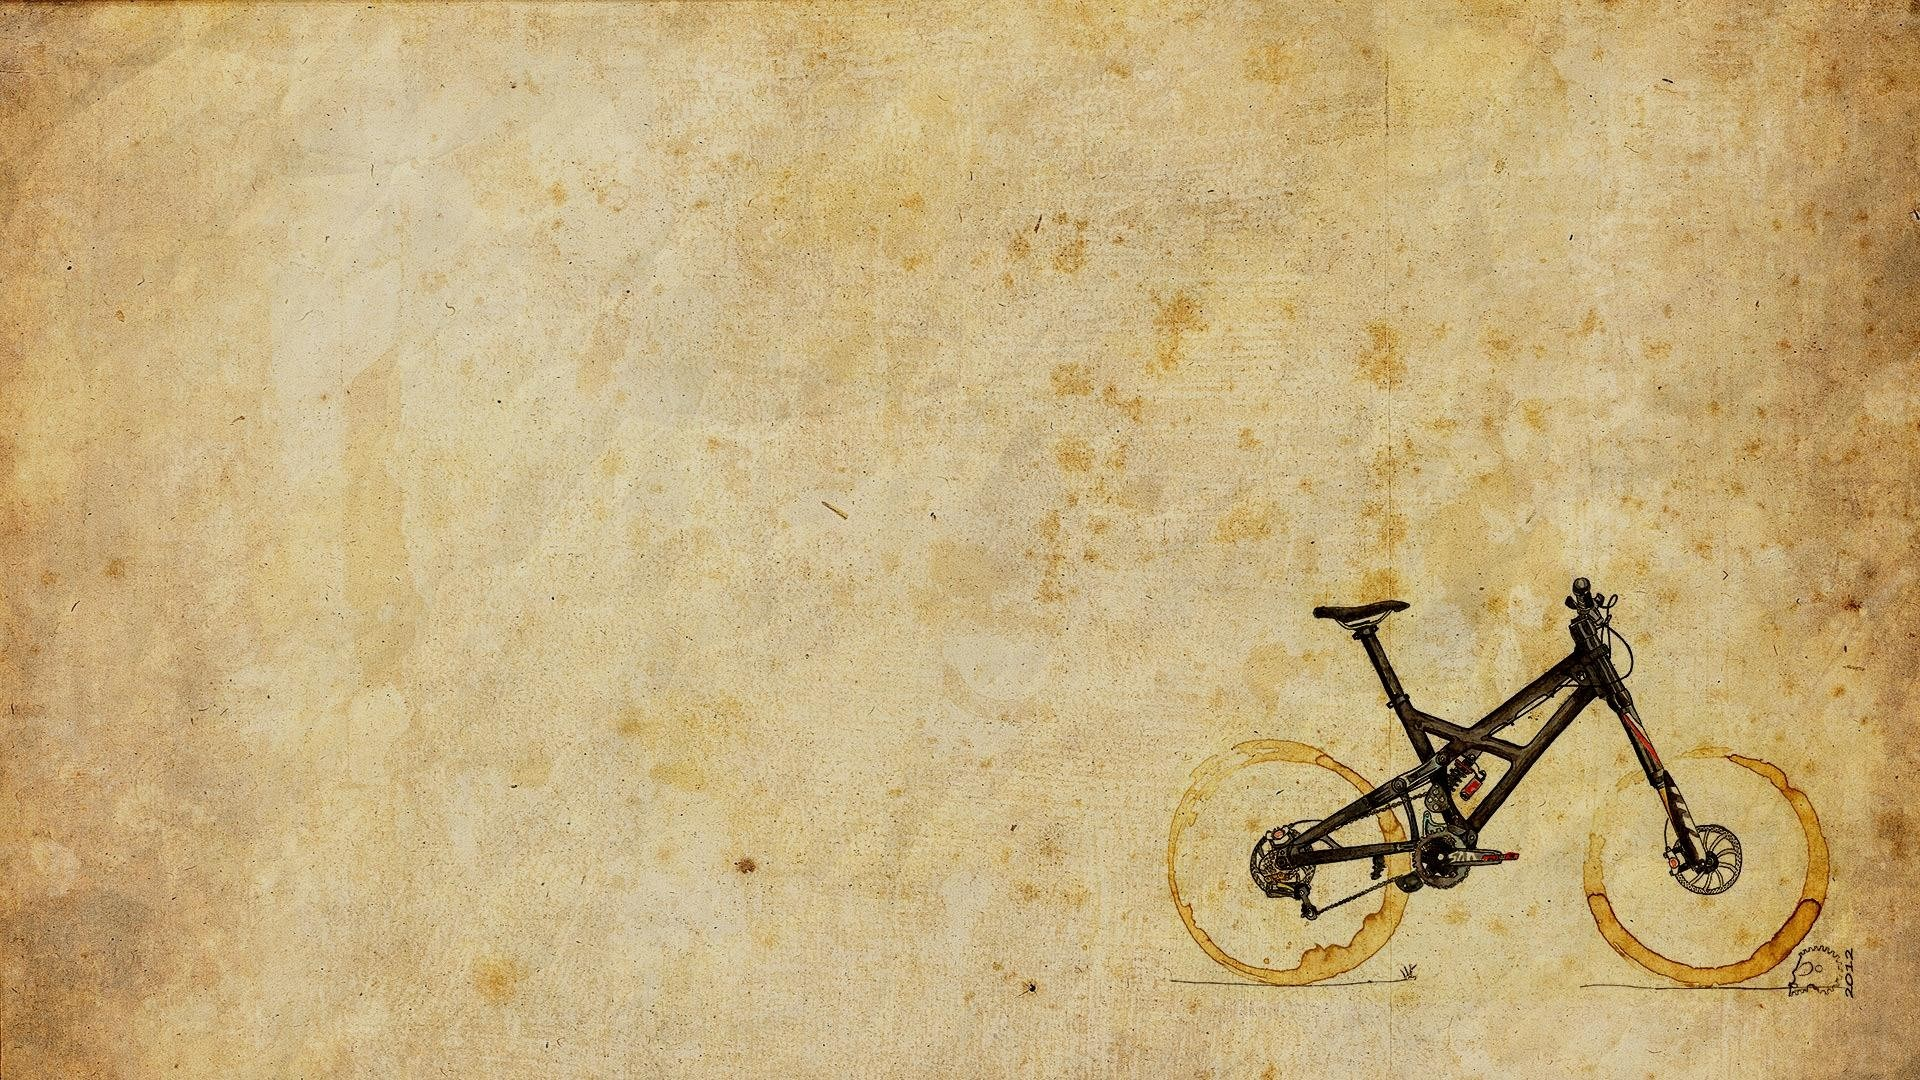 AMB Wallpapers provides you the latest Mountain Bike Wallpaper Vital MTB Desktop Wallpapers  Mountain Bikes Feature Stories 1920x1080